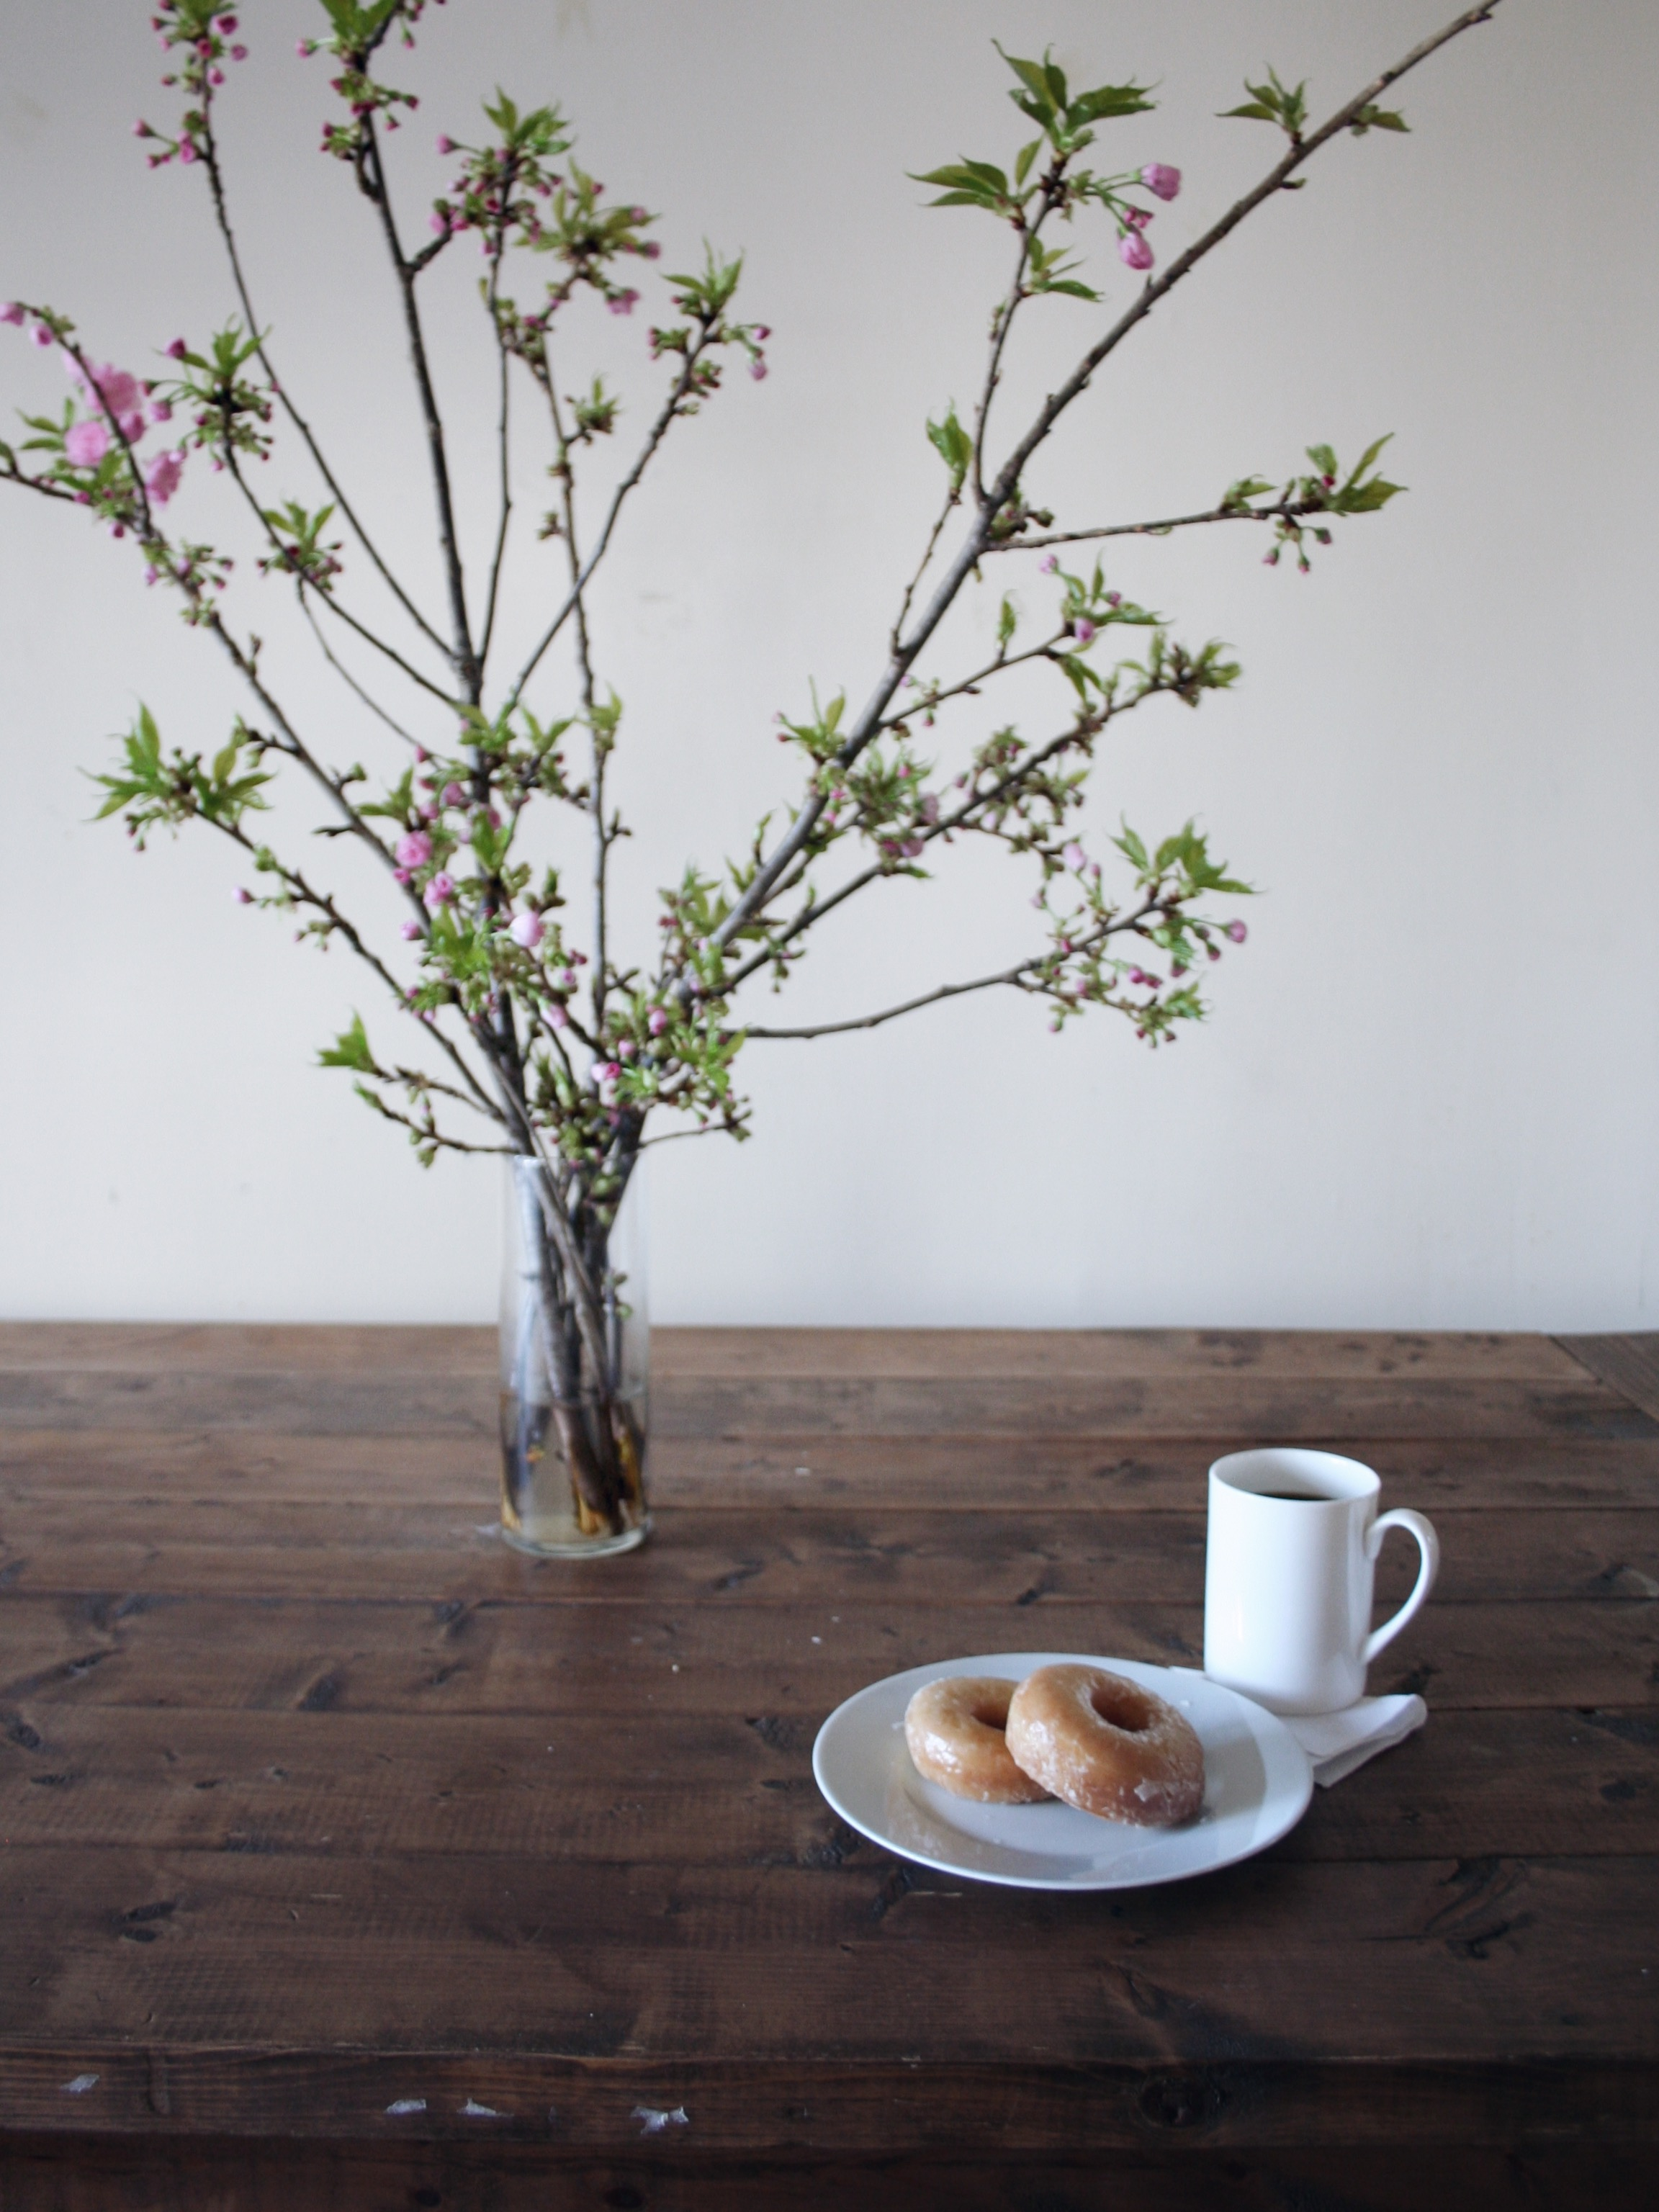 Slow Sunday: Donuts, coffee, and Kwanzan blossoms